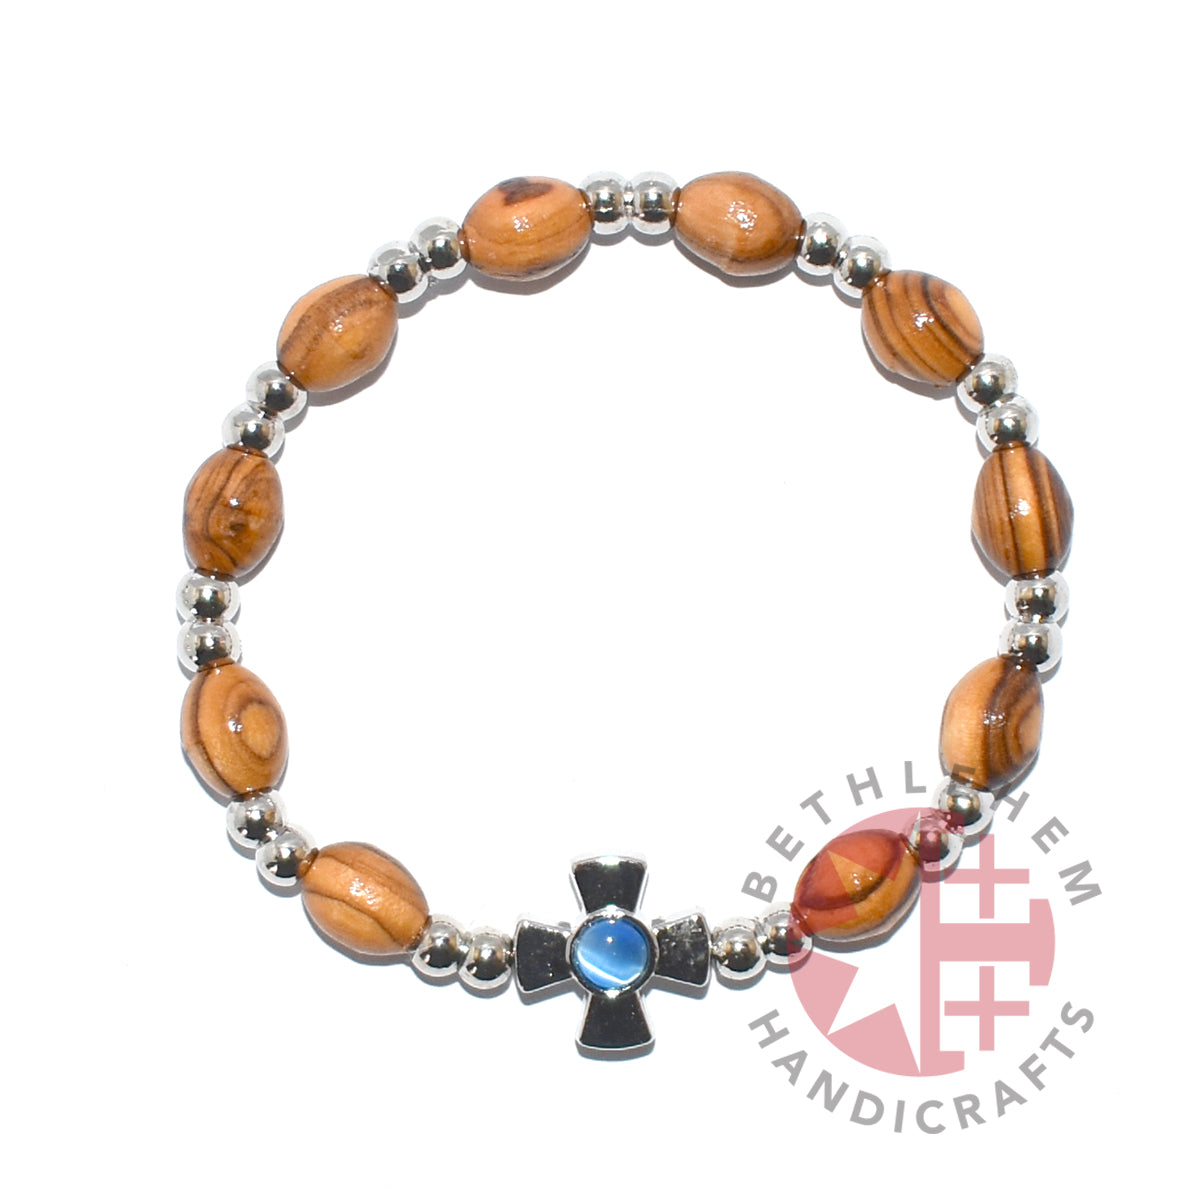 Olive Wood Oval 9*6 mm Beads Bracelet with Blue Zircon Birthstone